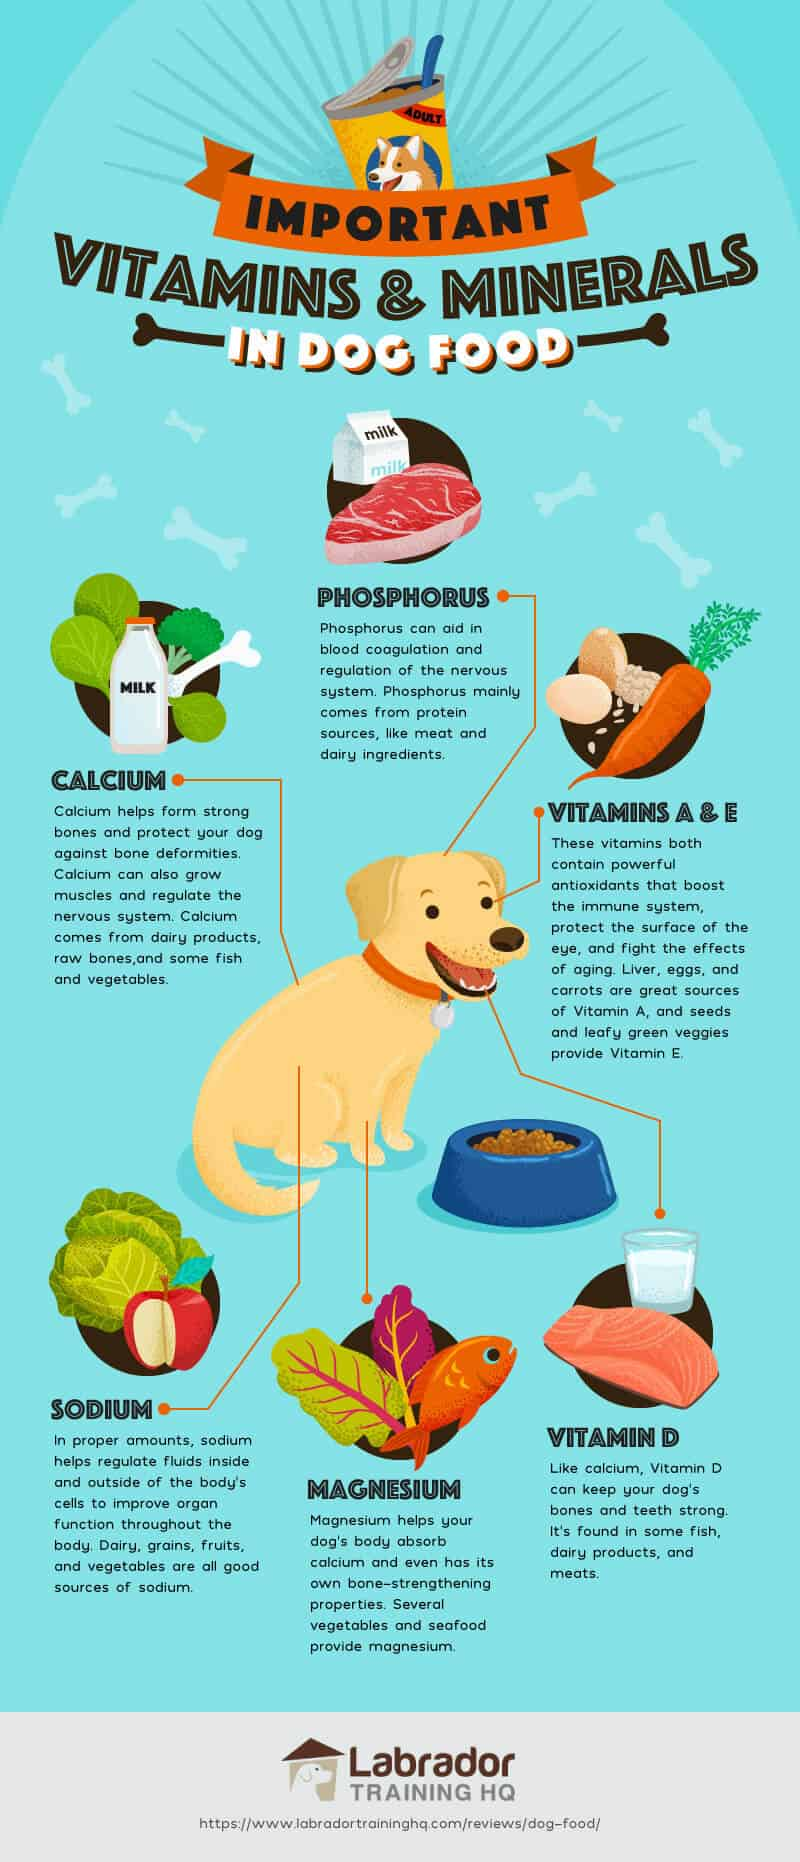 Important Vitamins and Minerals in Dog Food